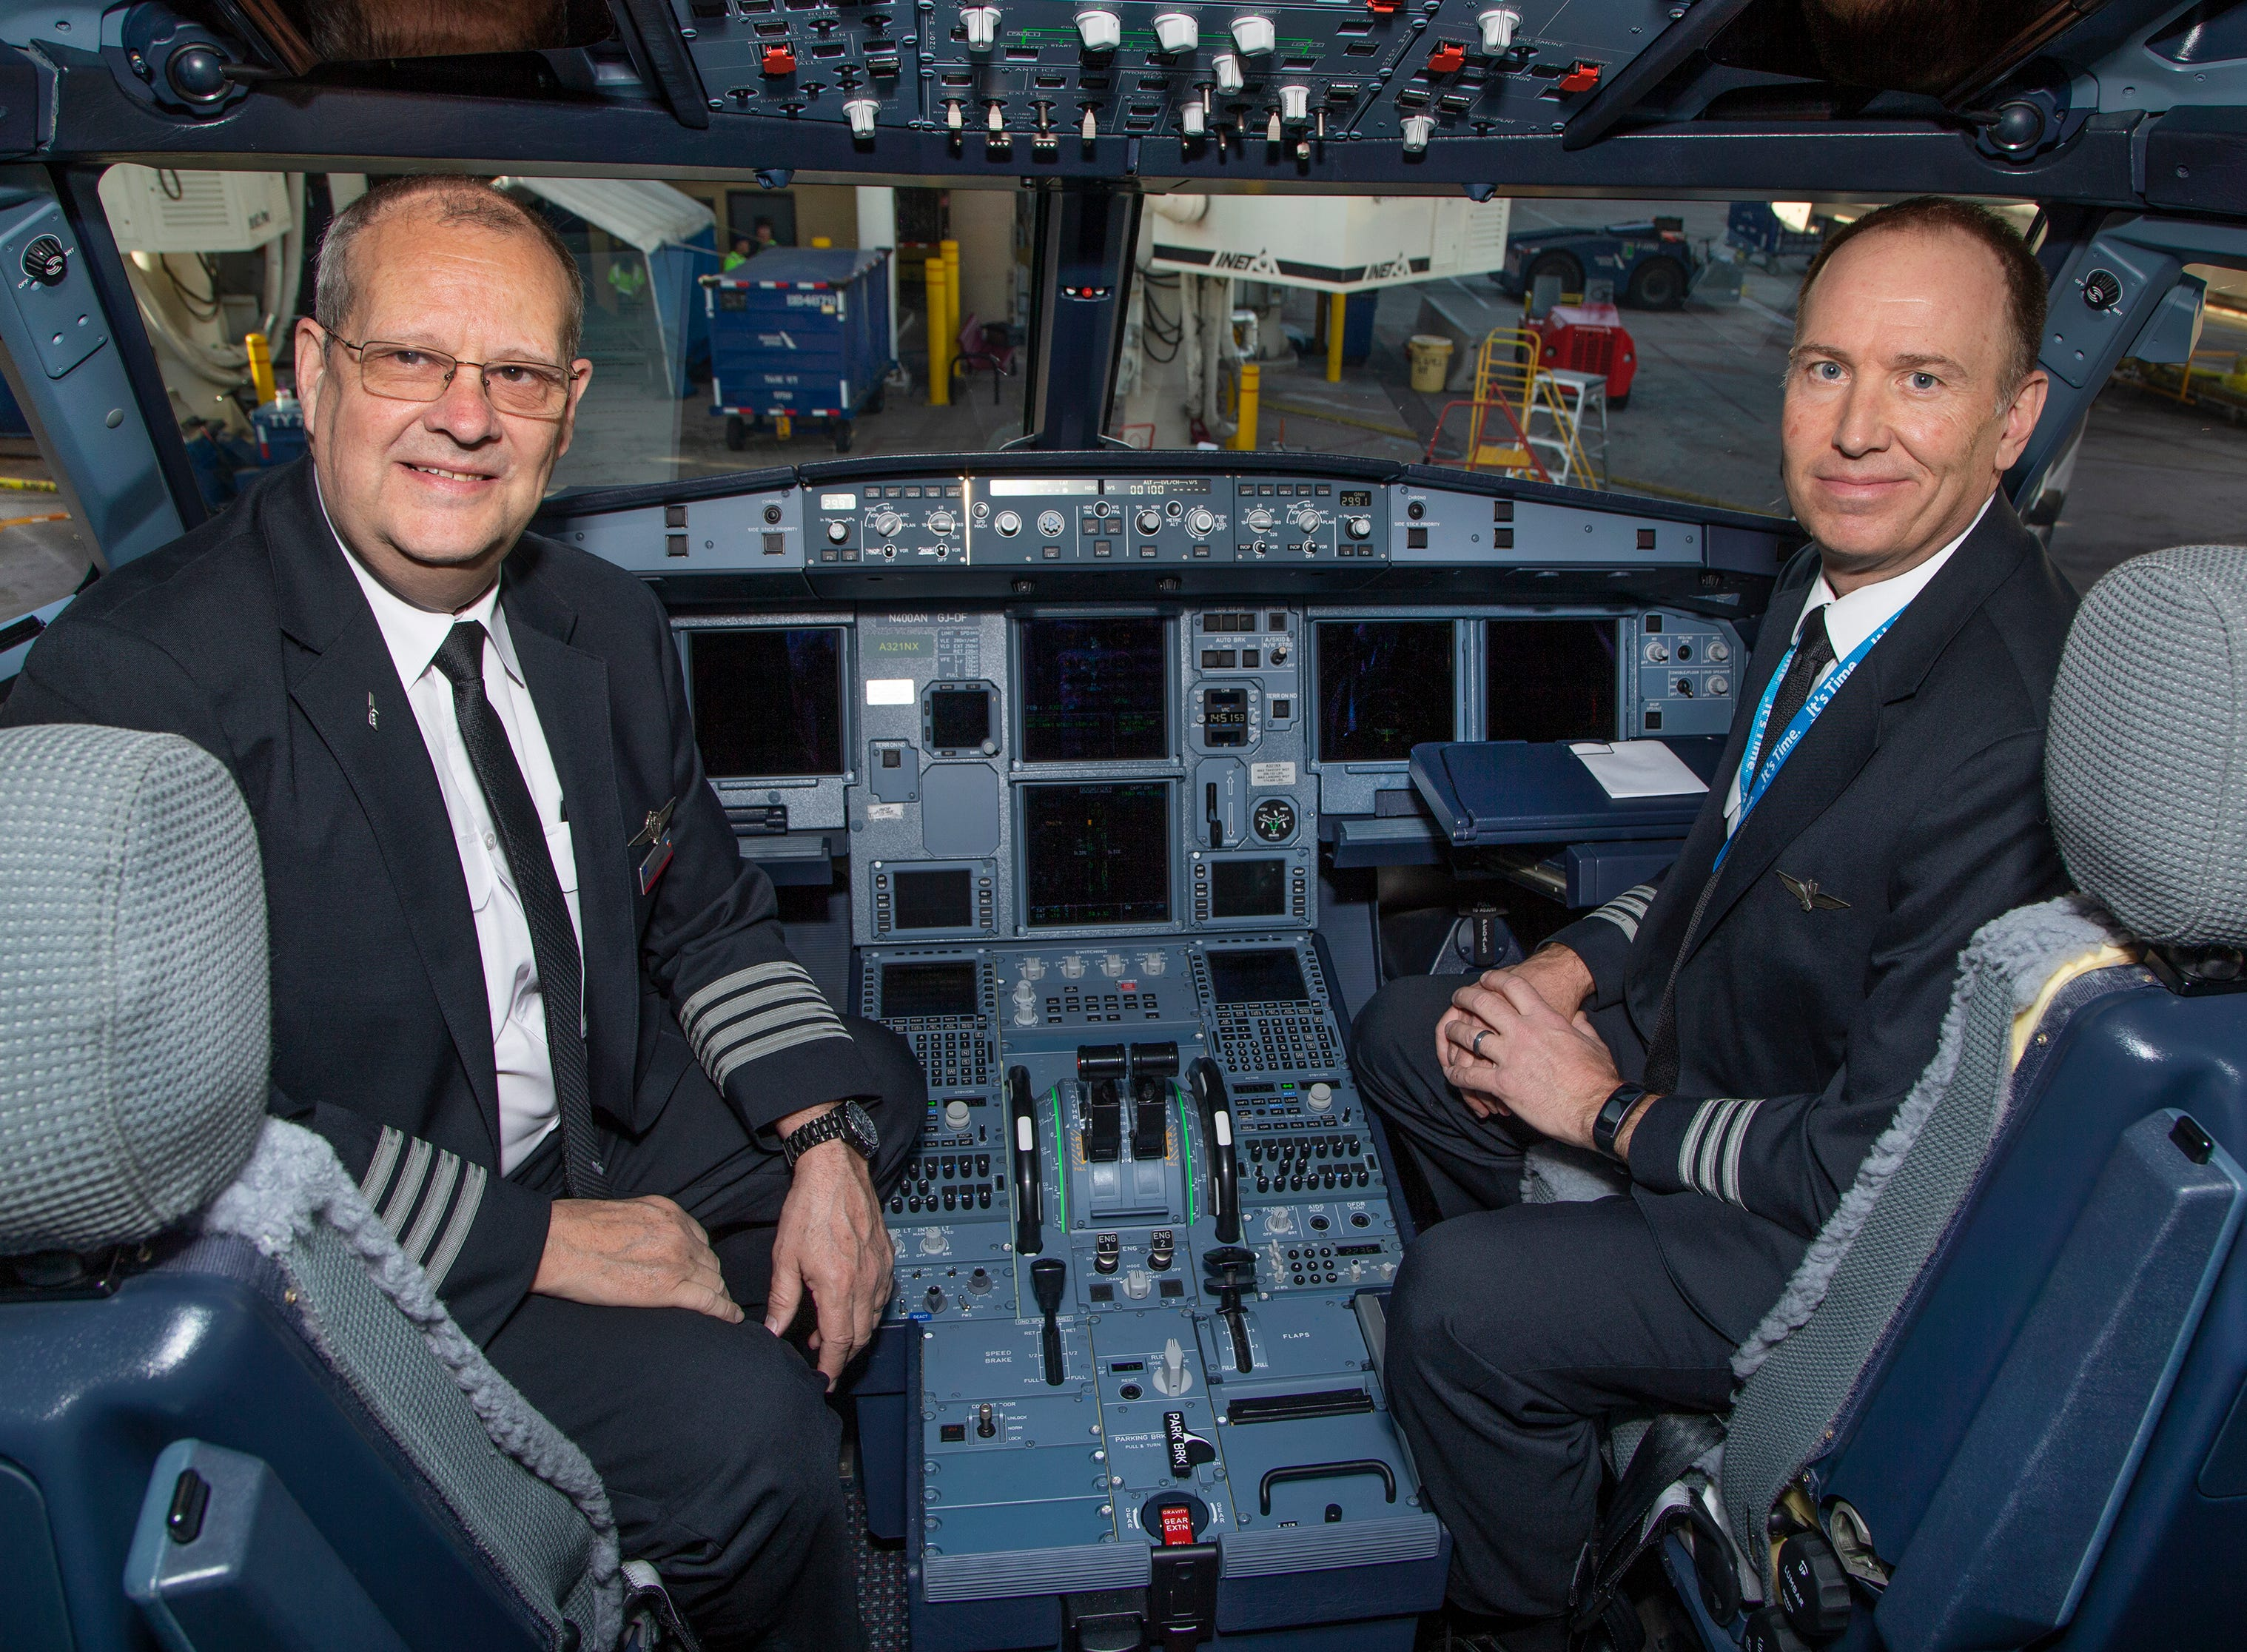 Captain Craig D.K. Jones, left, and First Officer Dan Tyger sit in the cockpit before the first flight which was from Phoenix Sky Harbor International Airport to Orlando, Florida on April 2, 2019.